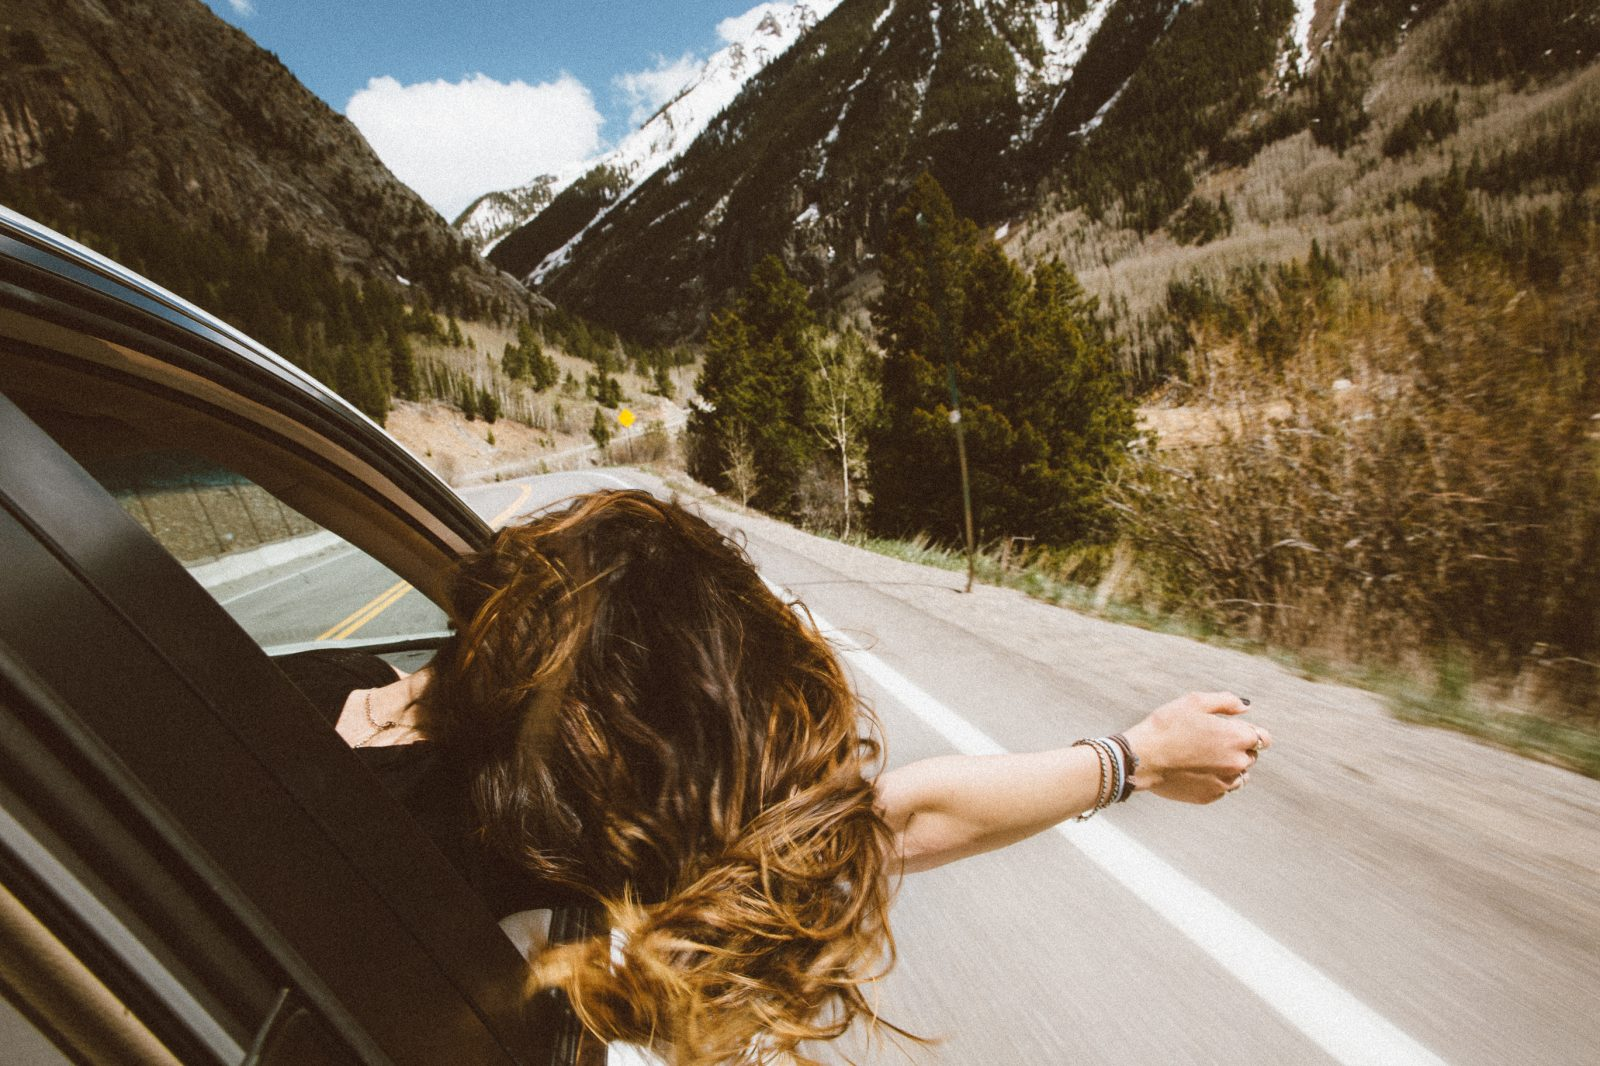 A woman enjoying her road trip